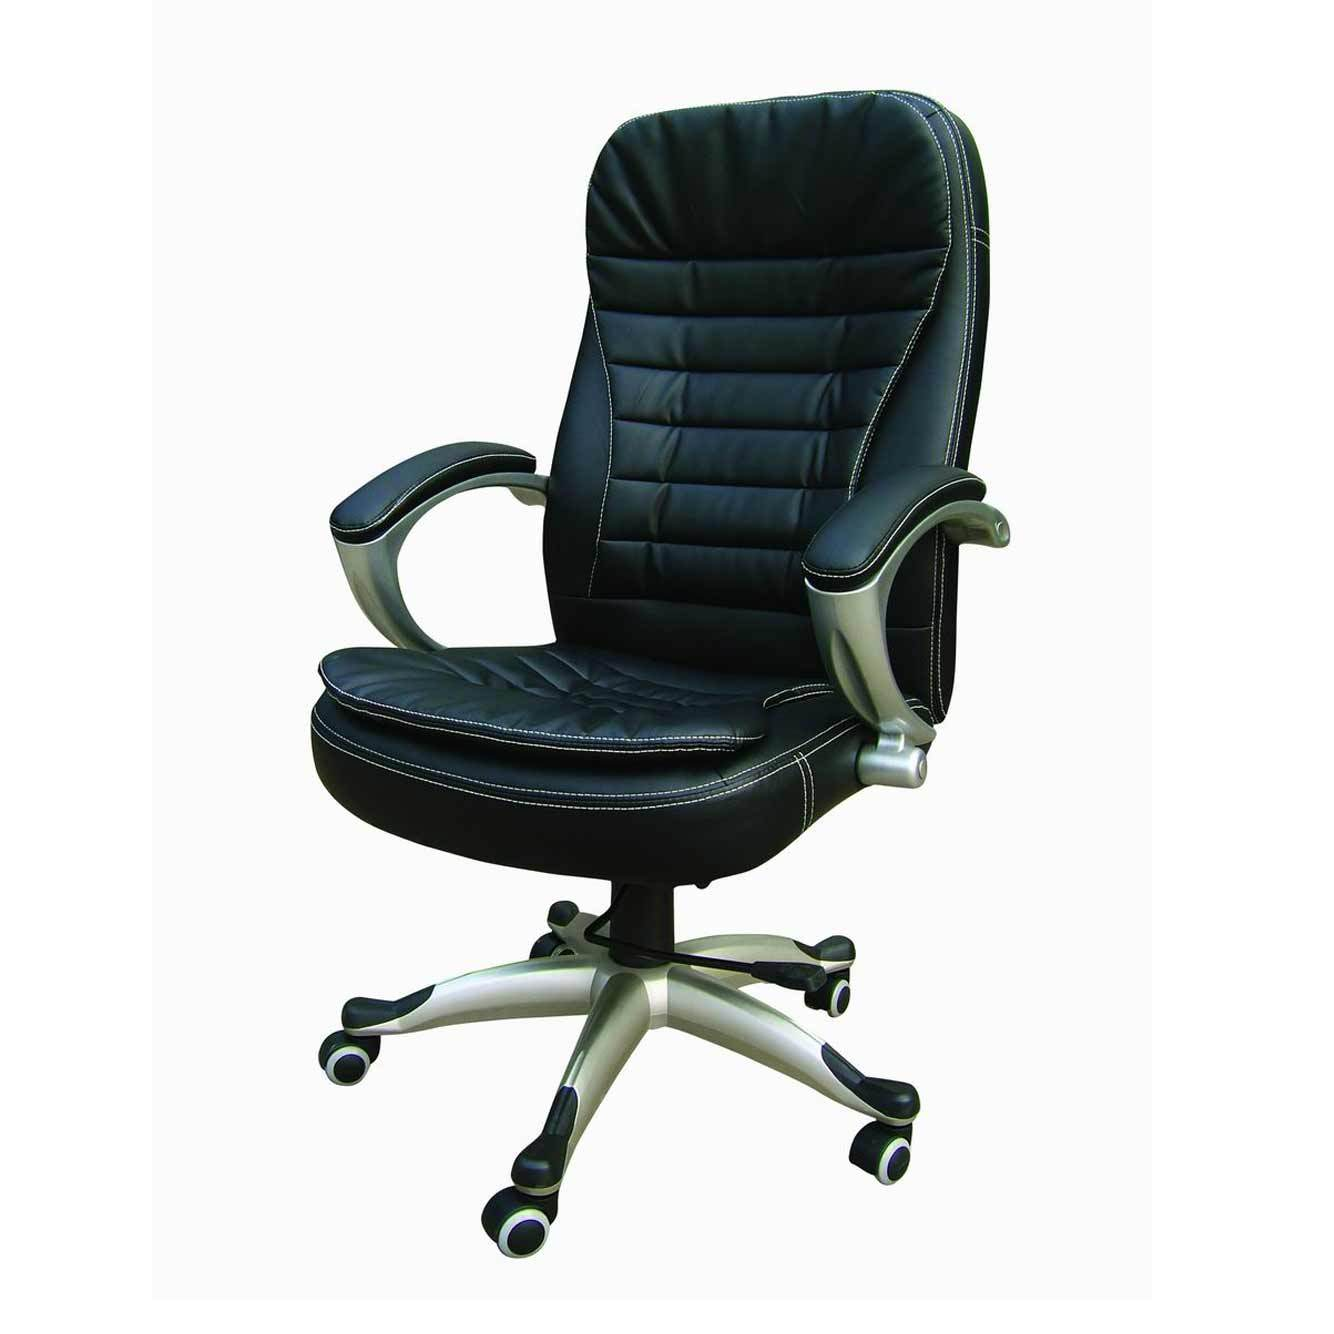 cheap office chairs amazon. Amazon Laptop Chair. Computer Chair Cheap Office Chairs